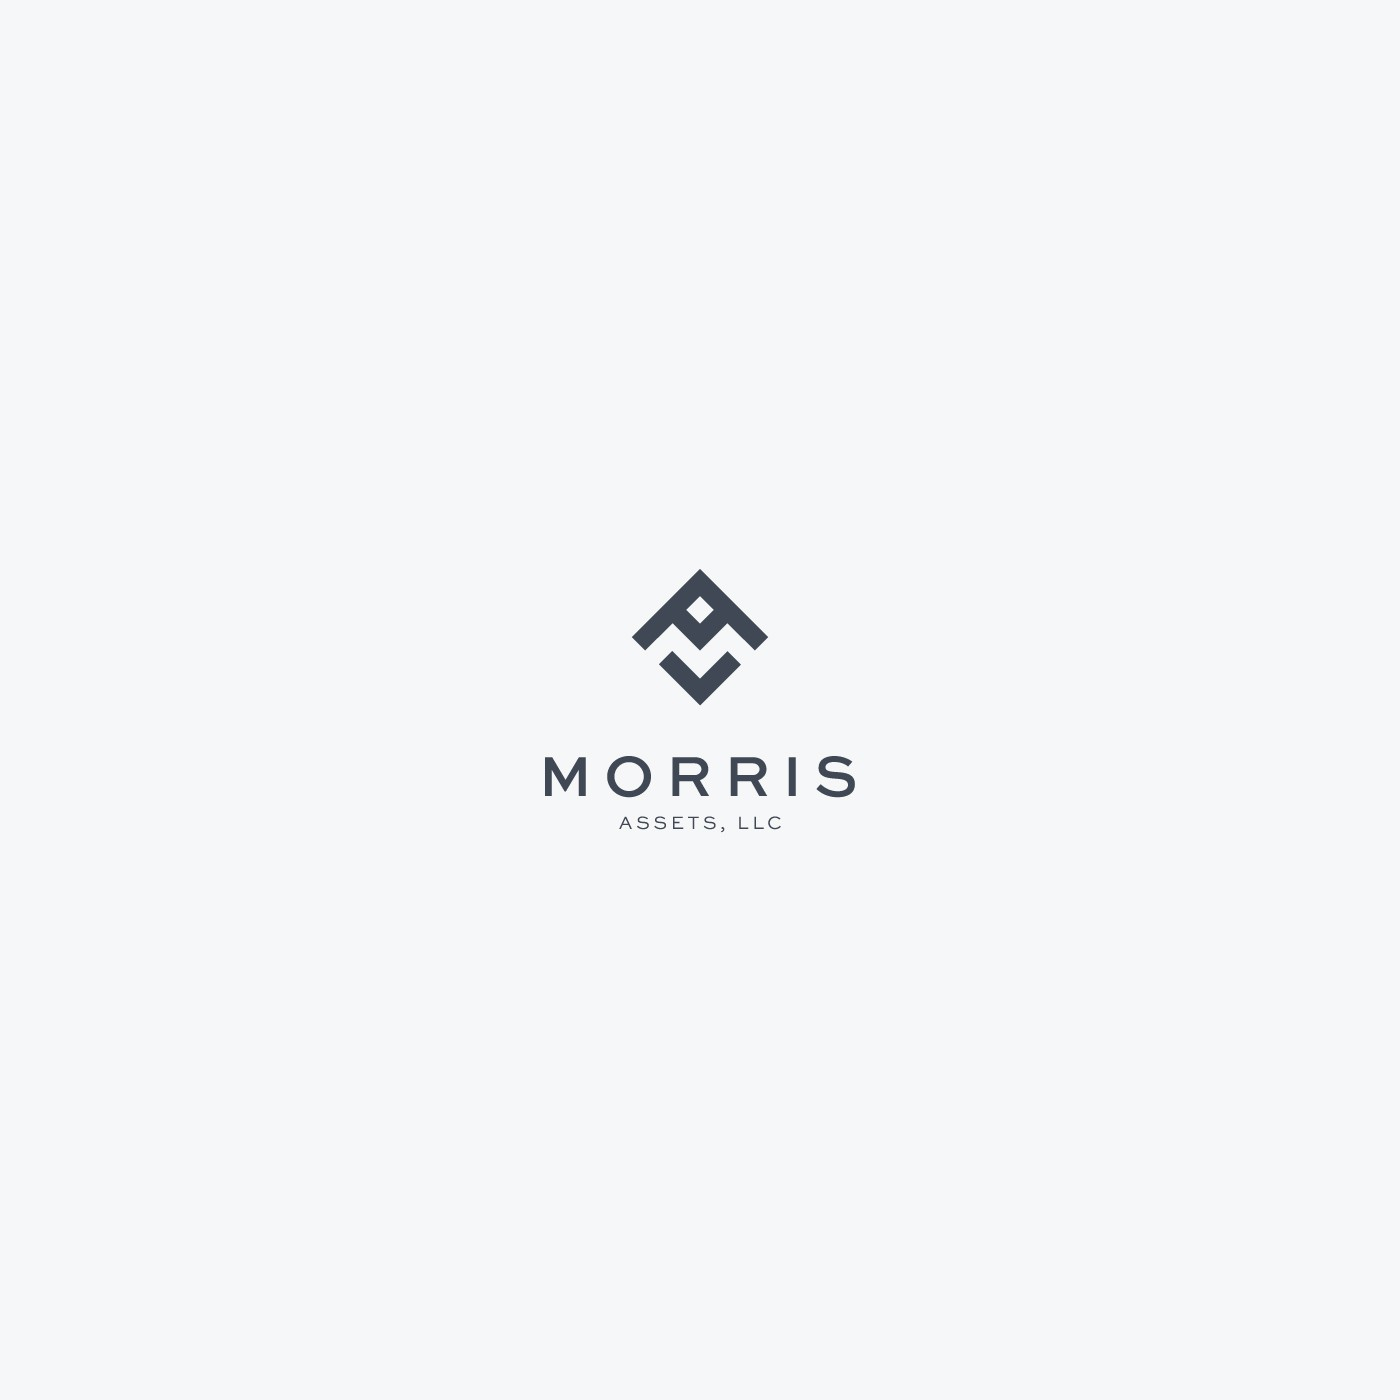 Logo & business cards for Morris Assets, LLC